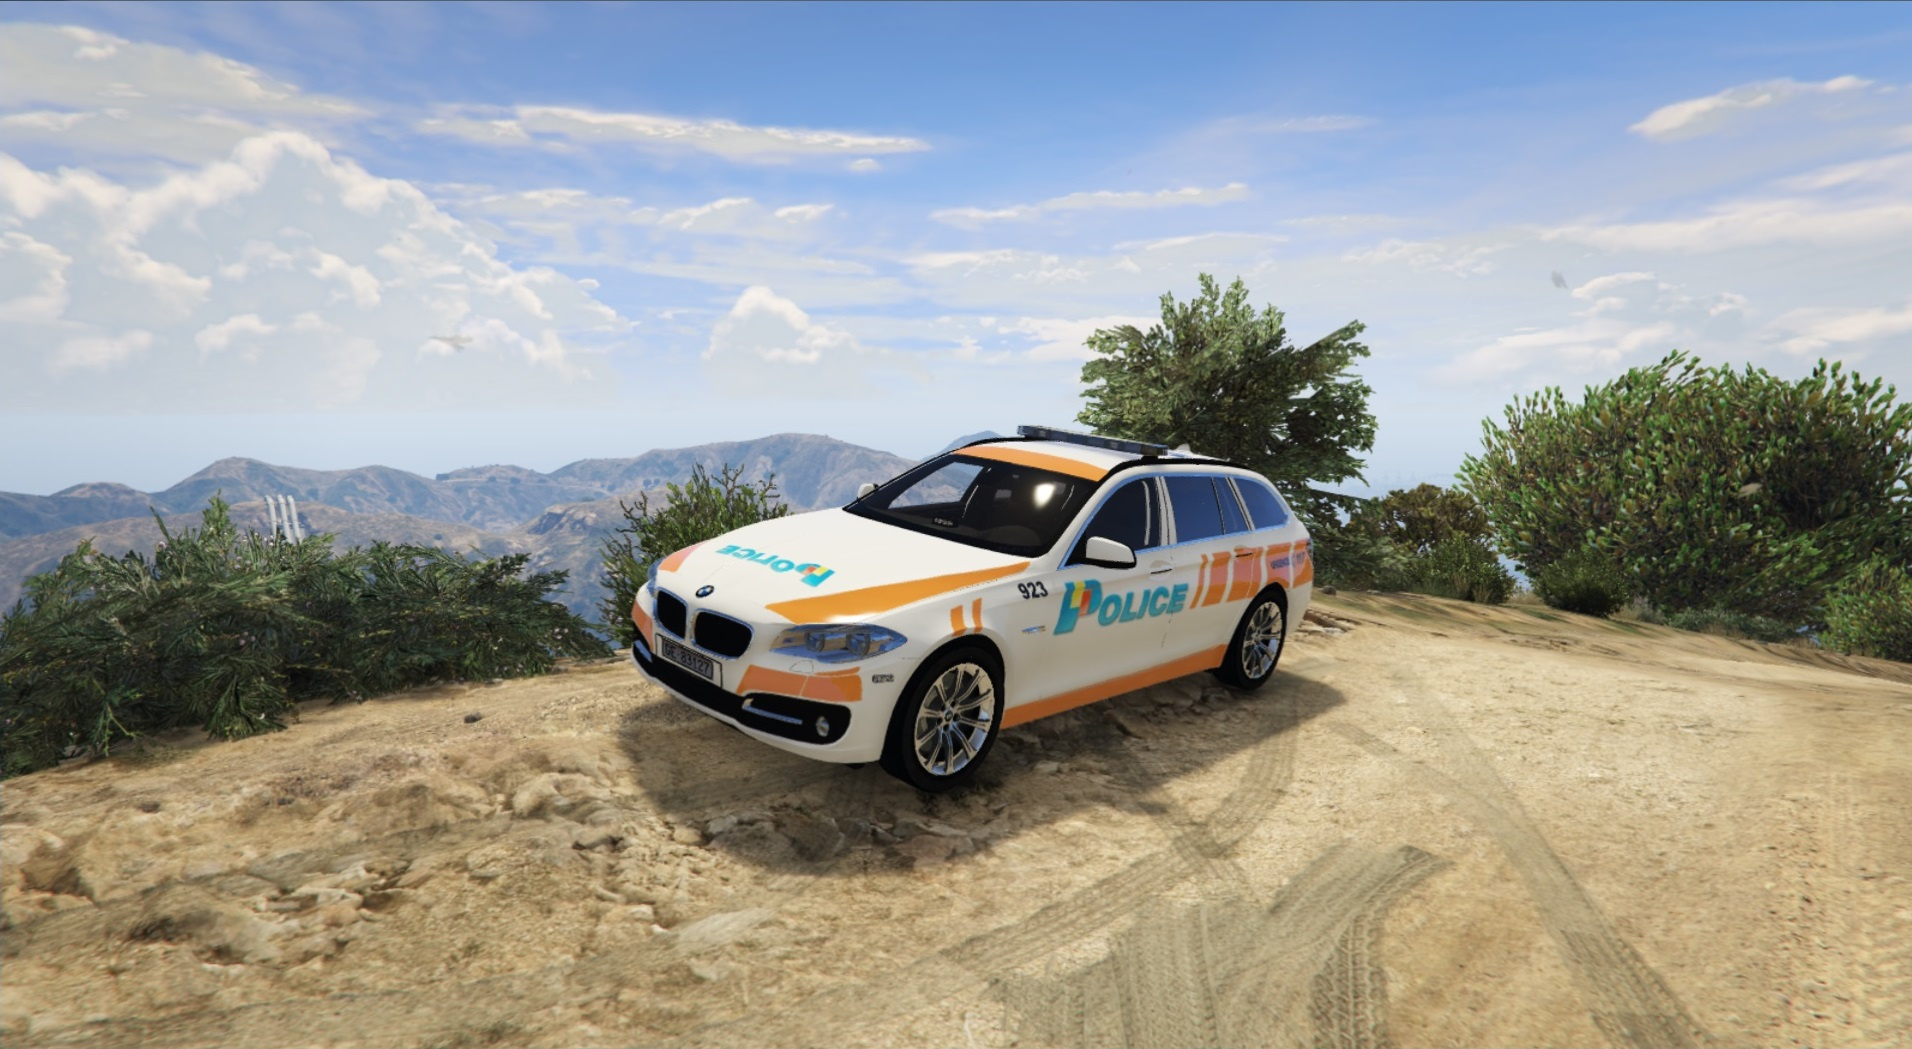 Bmw 530d Swiss Ge Police Gta5 Mods Com